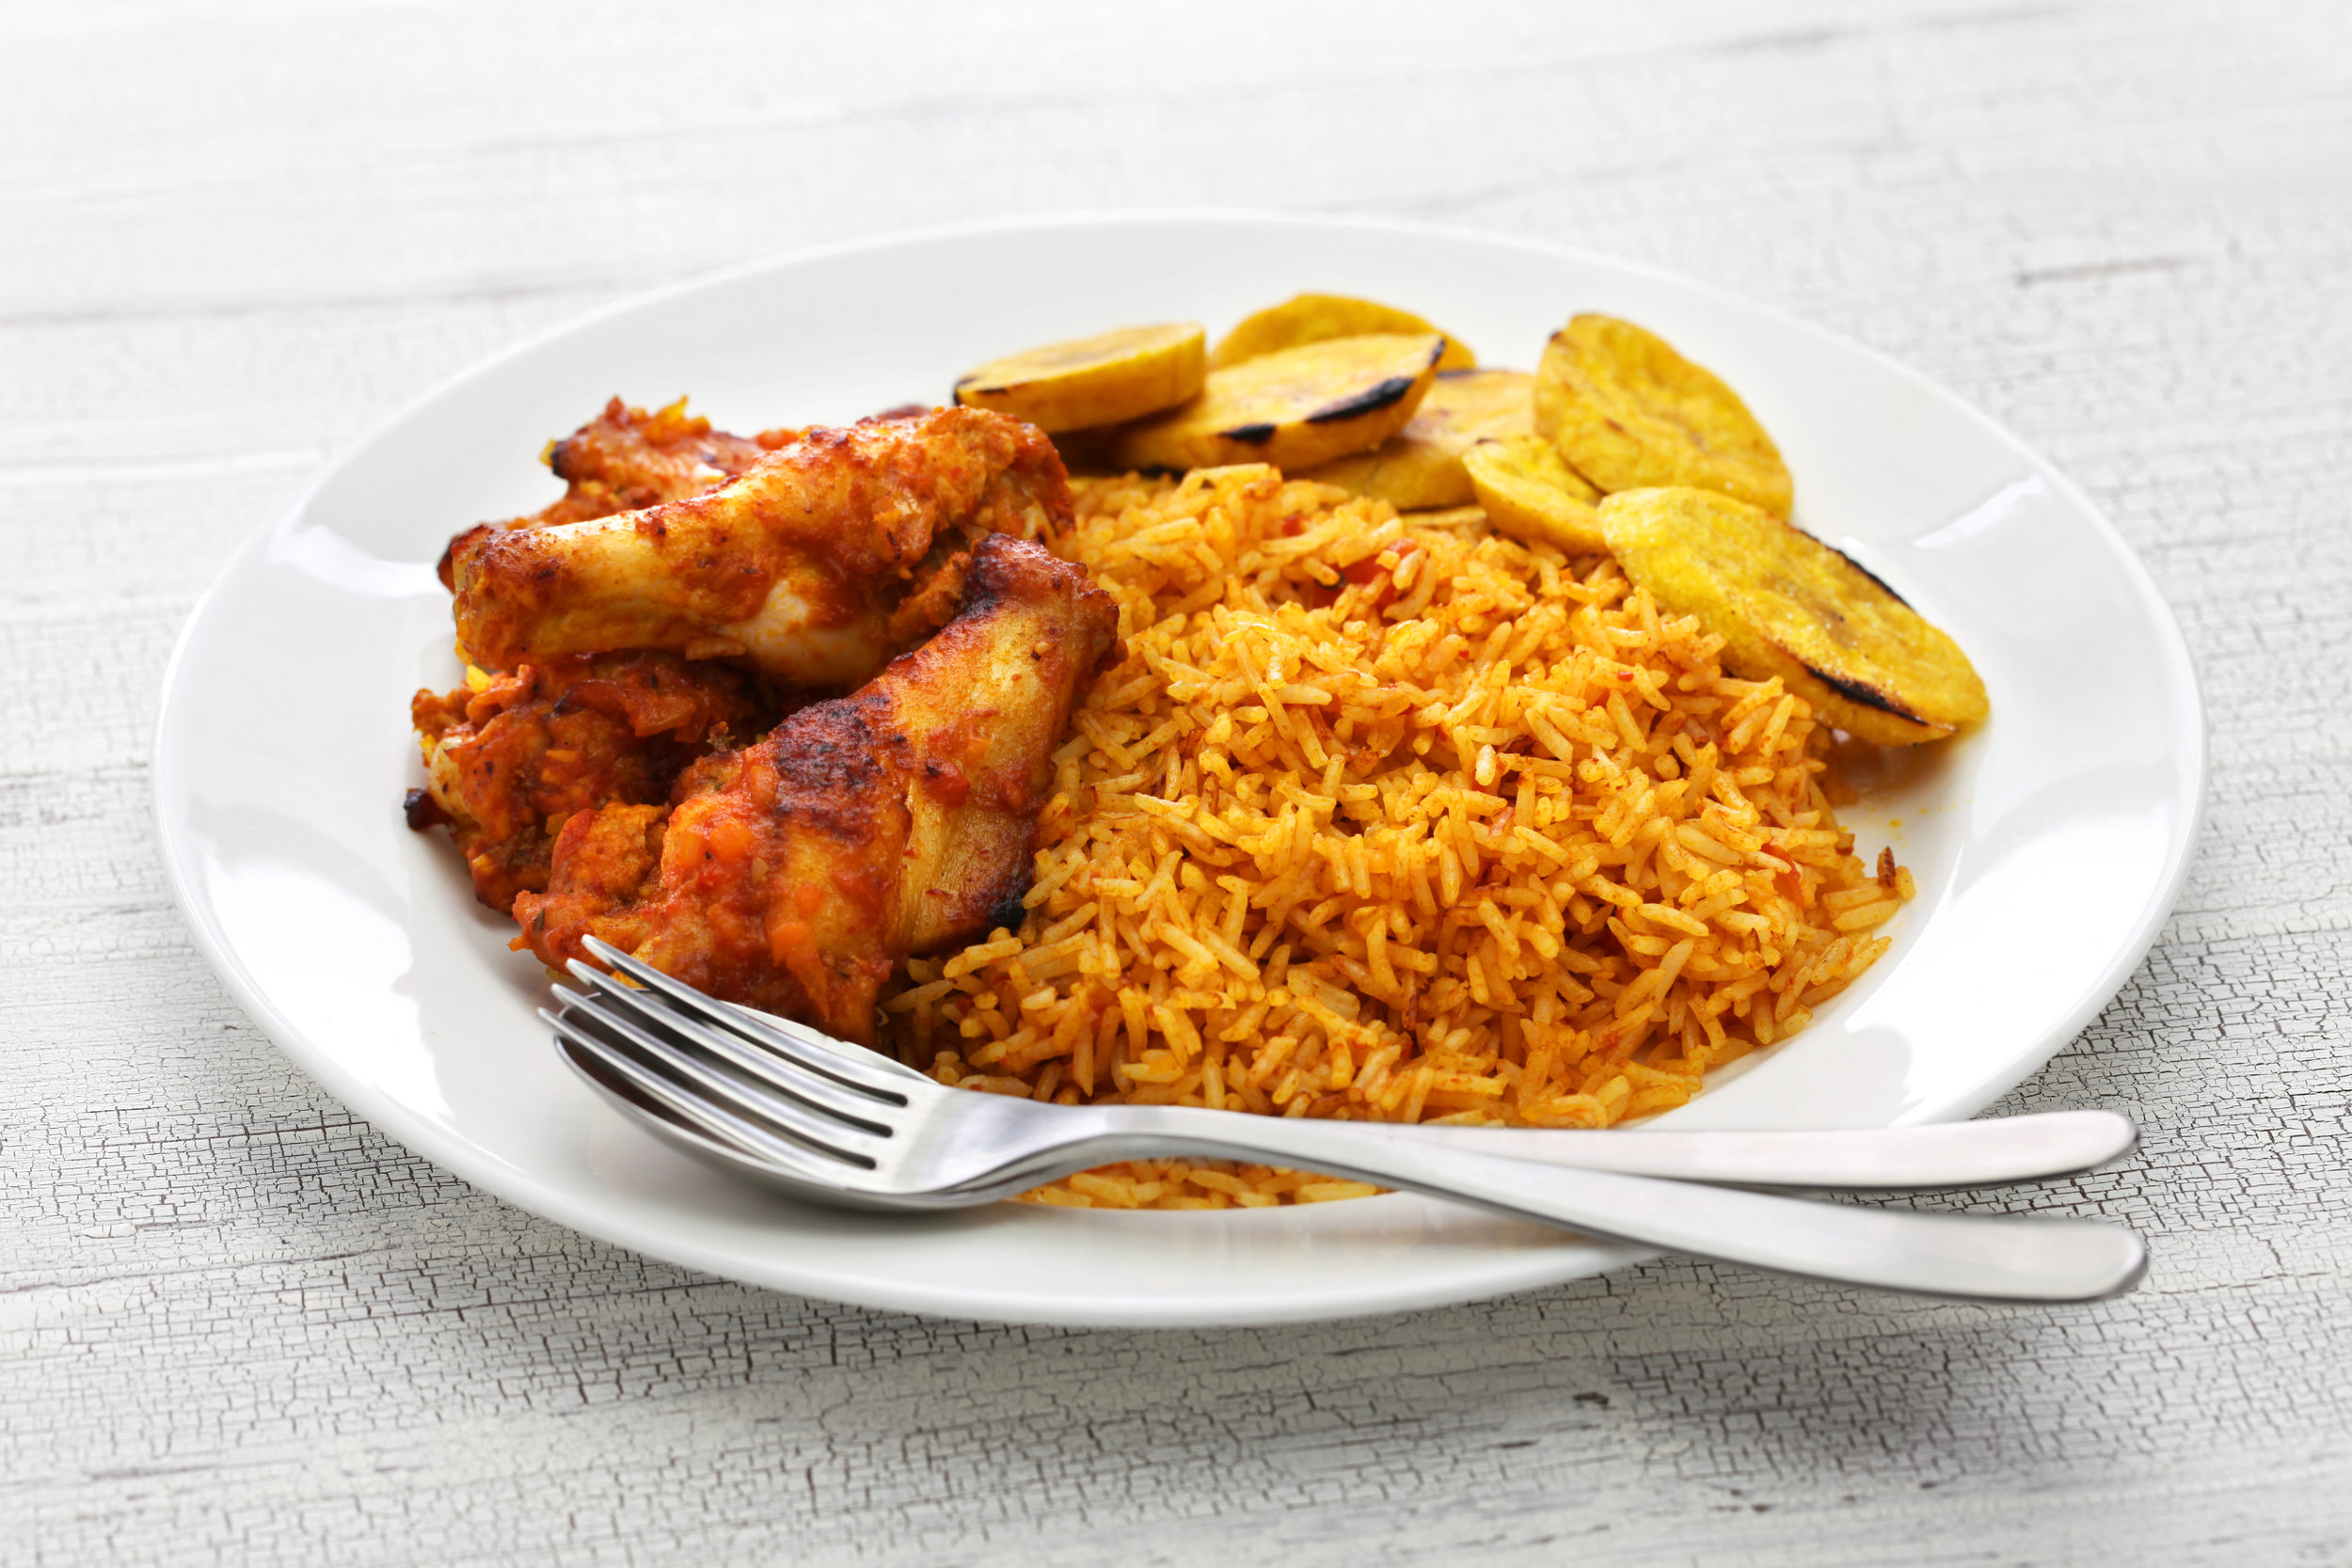 Jollof Rice Family Meal $39.99  Contains 1/2 a tray of Jollof Rice and 6 pieces of chicken.  Jollof rice is rice sautéed in blended tomatoes, onions, bell pepper and habanero  Pan size is 2 9/16 inches deep and 10 3/8 inches wide